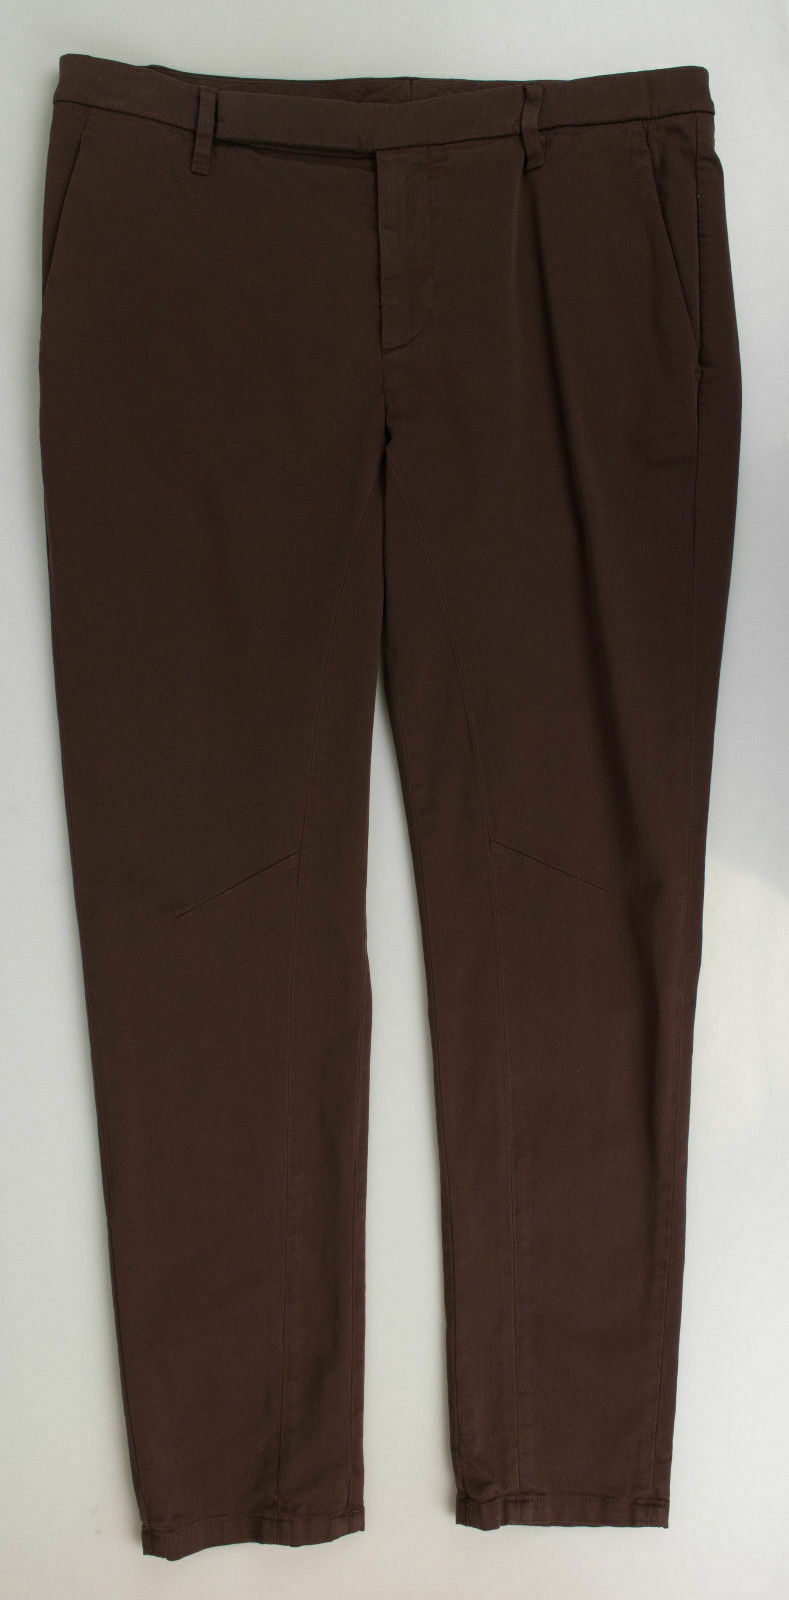 New BRUNELLO CUCINELLI Women's Brown Cotton Blend Casual Pants Size 10 46